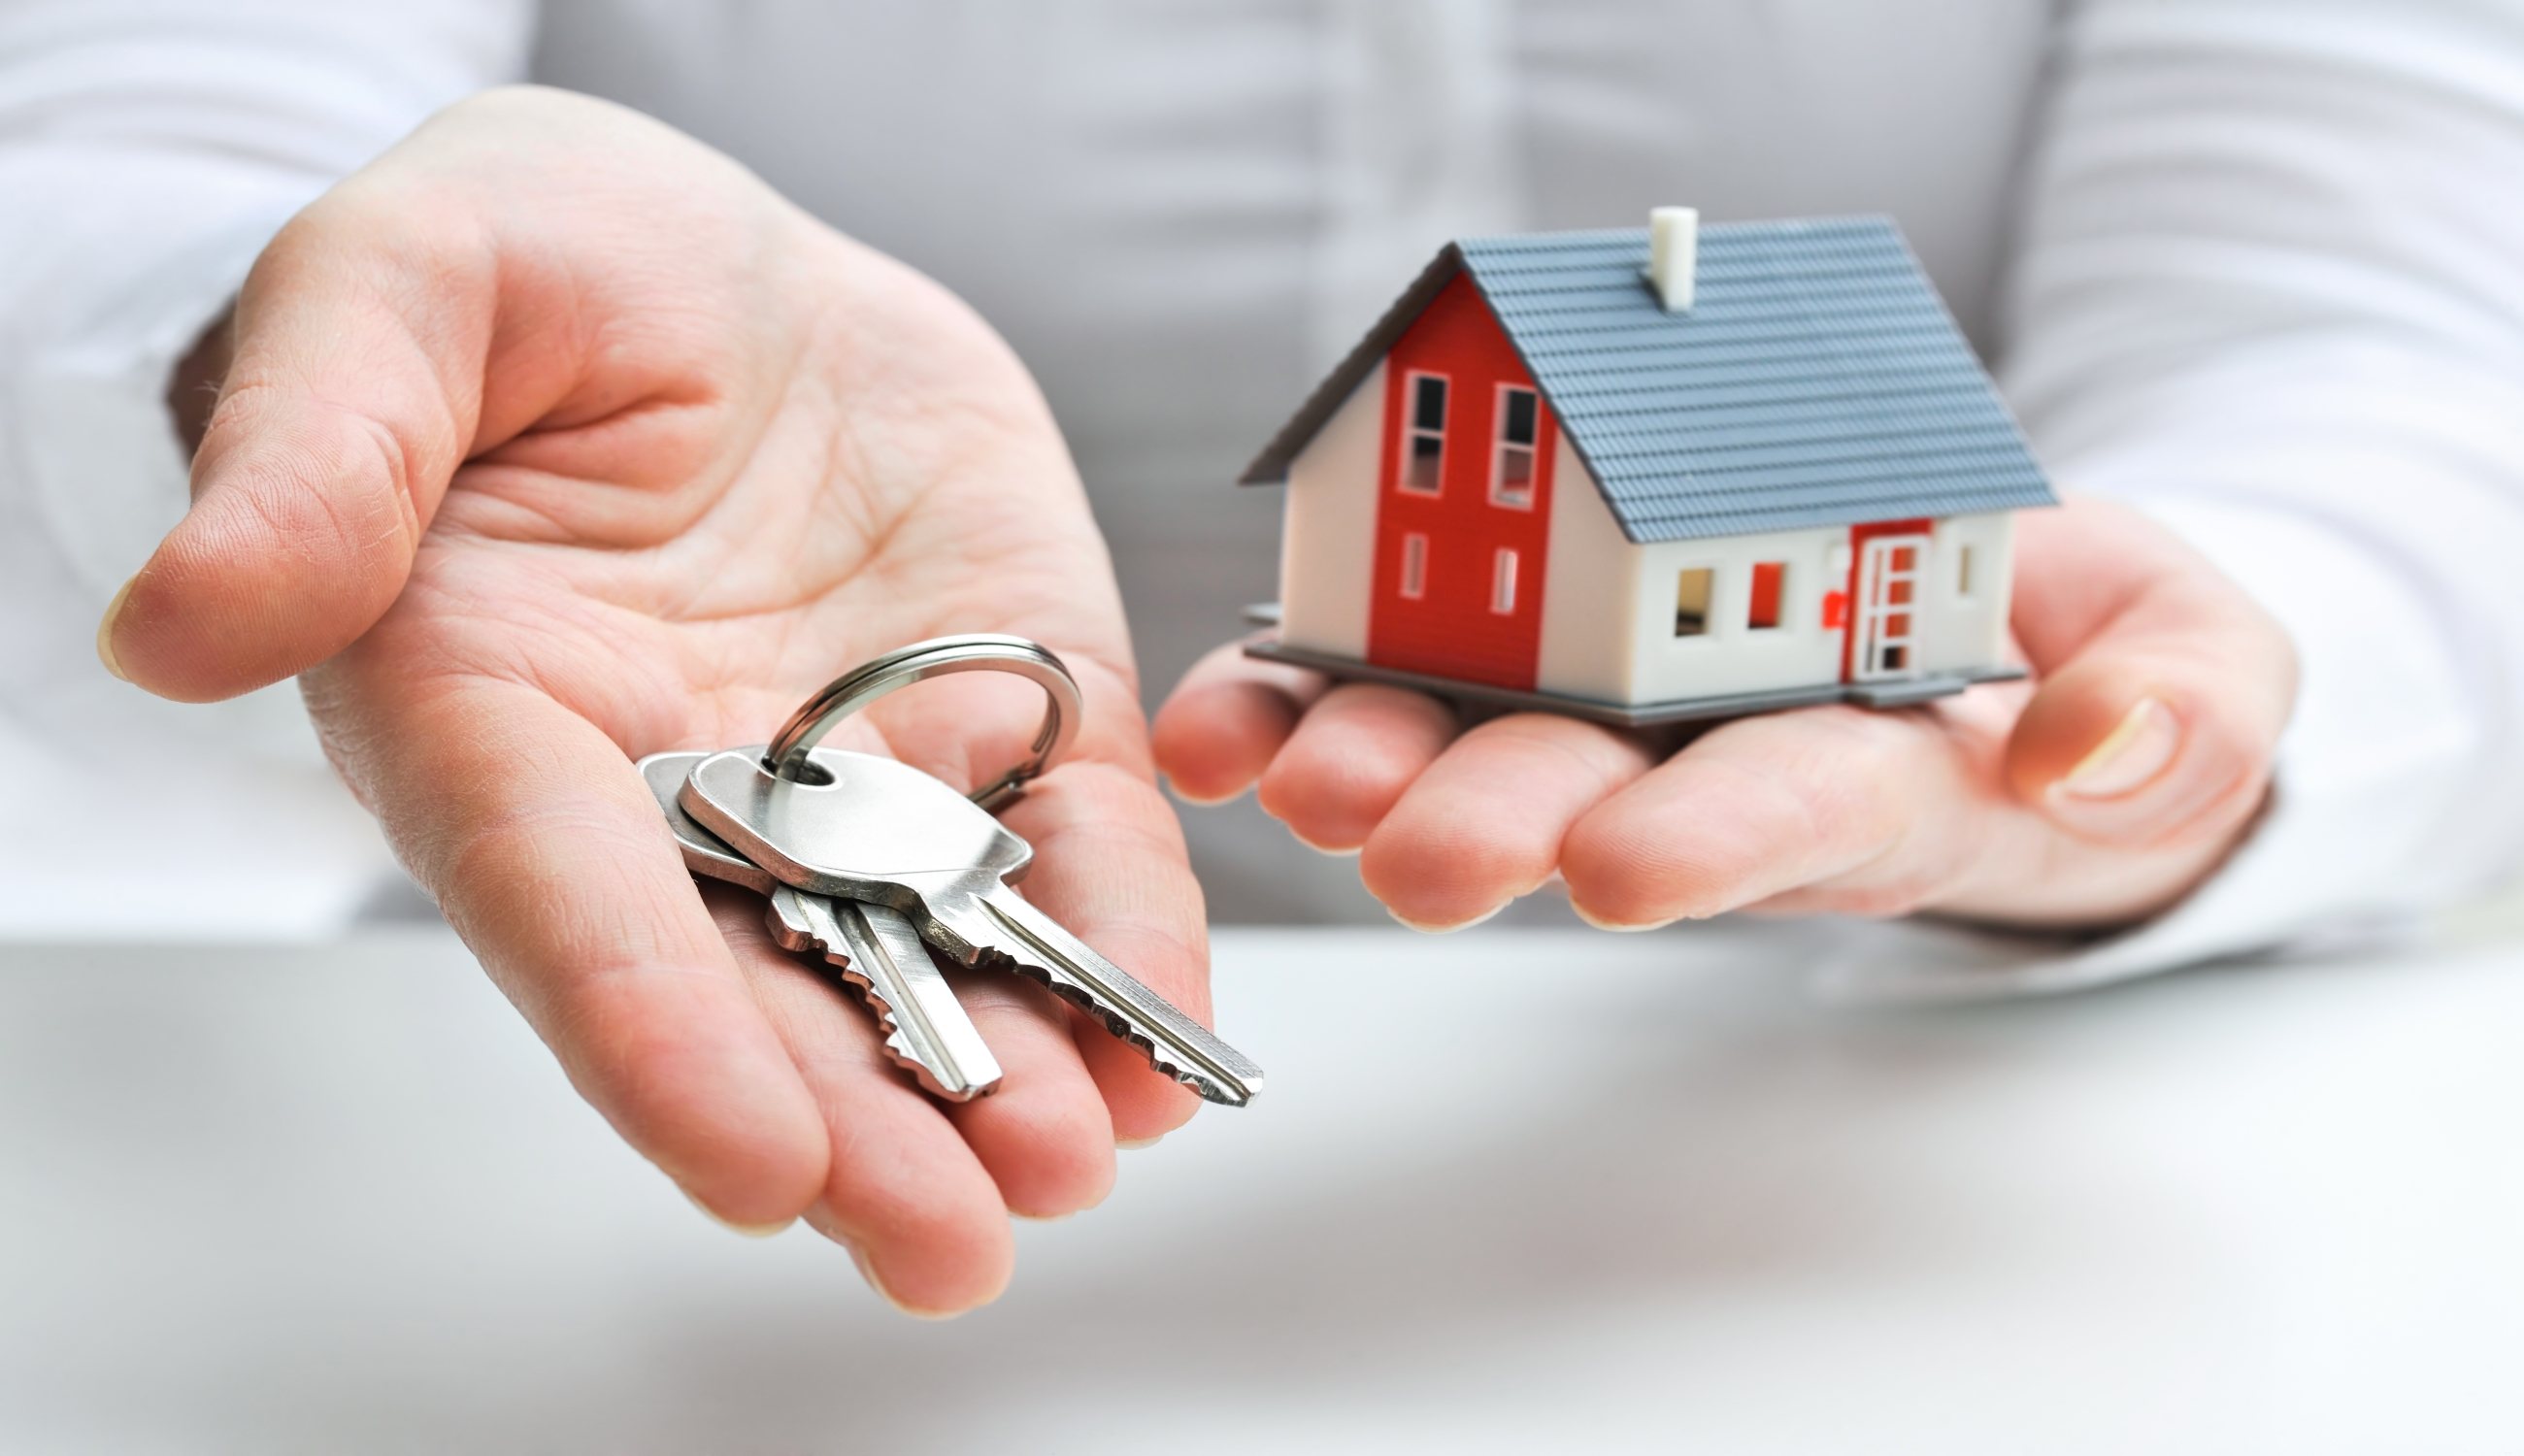 Twksfba invests in property management services in South Africa